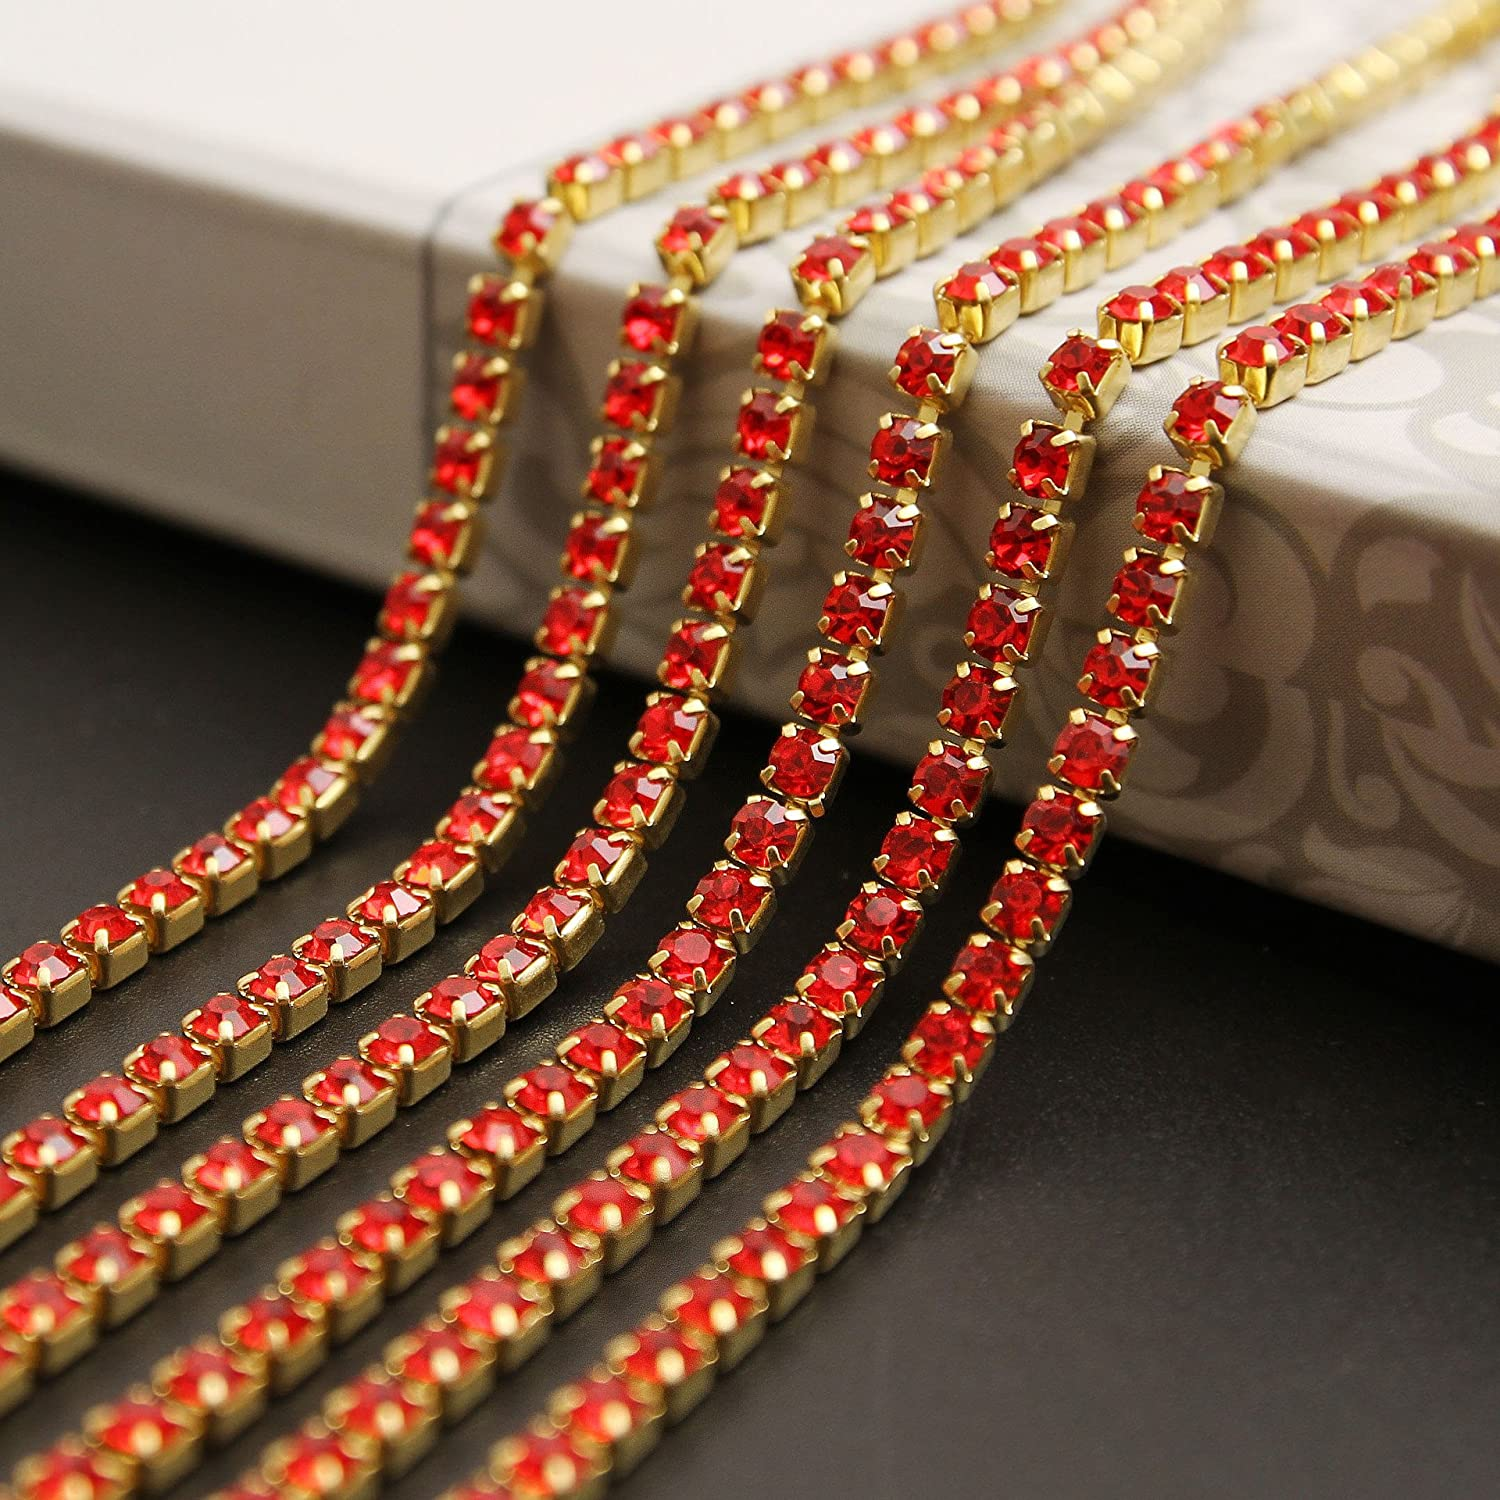 USIX 10 Yards Crystal Rhinestone Close Chain Trimming Claw Chain Multi Size Color Rhinestone Chain for DIY Arts Craft Sewing Jewelry Making Red-Gold Chain SS12//3.0MM